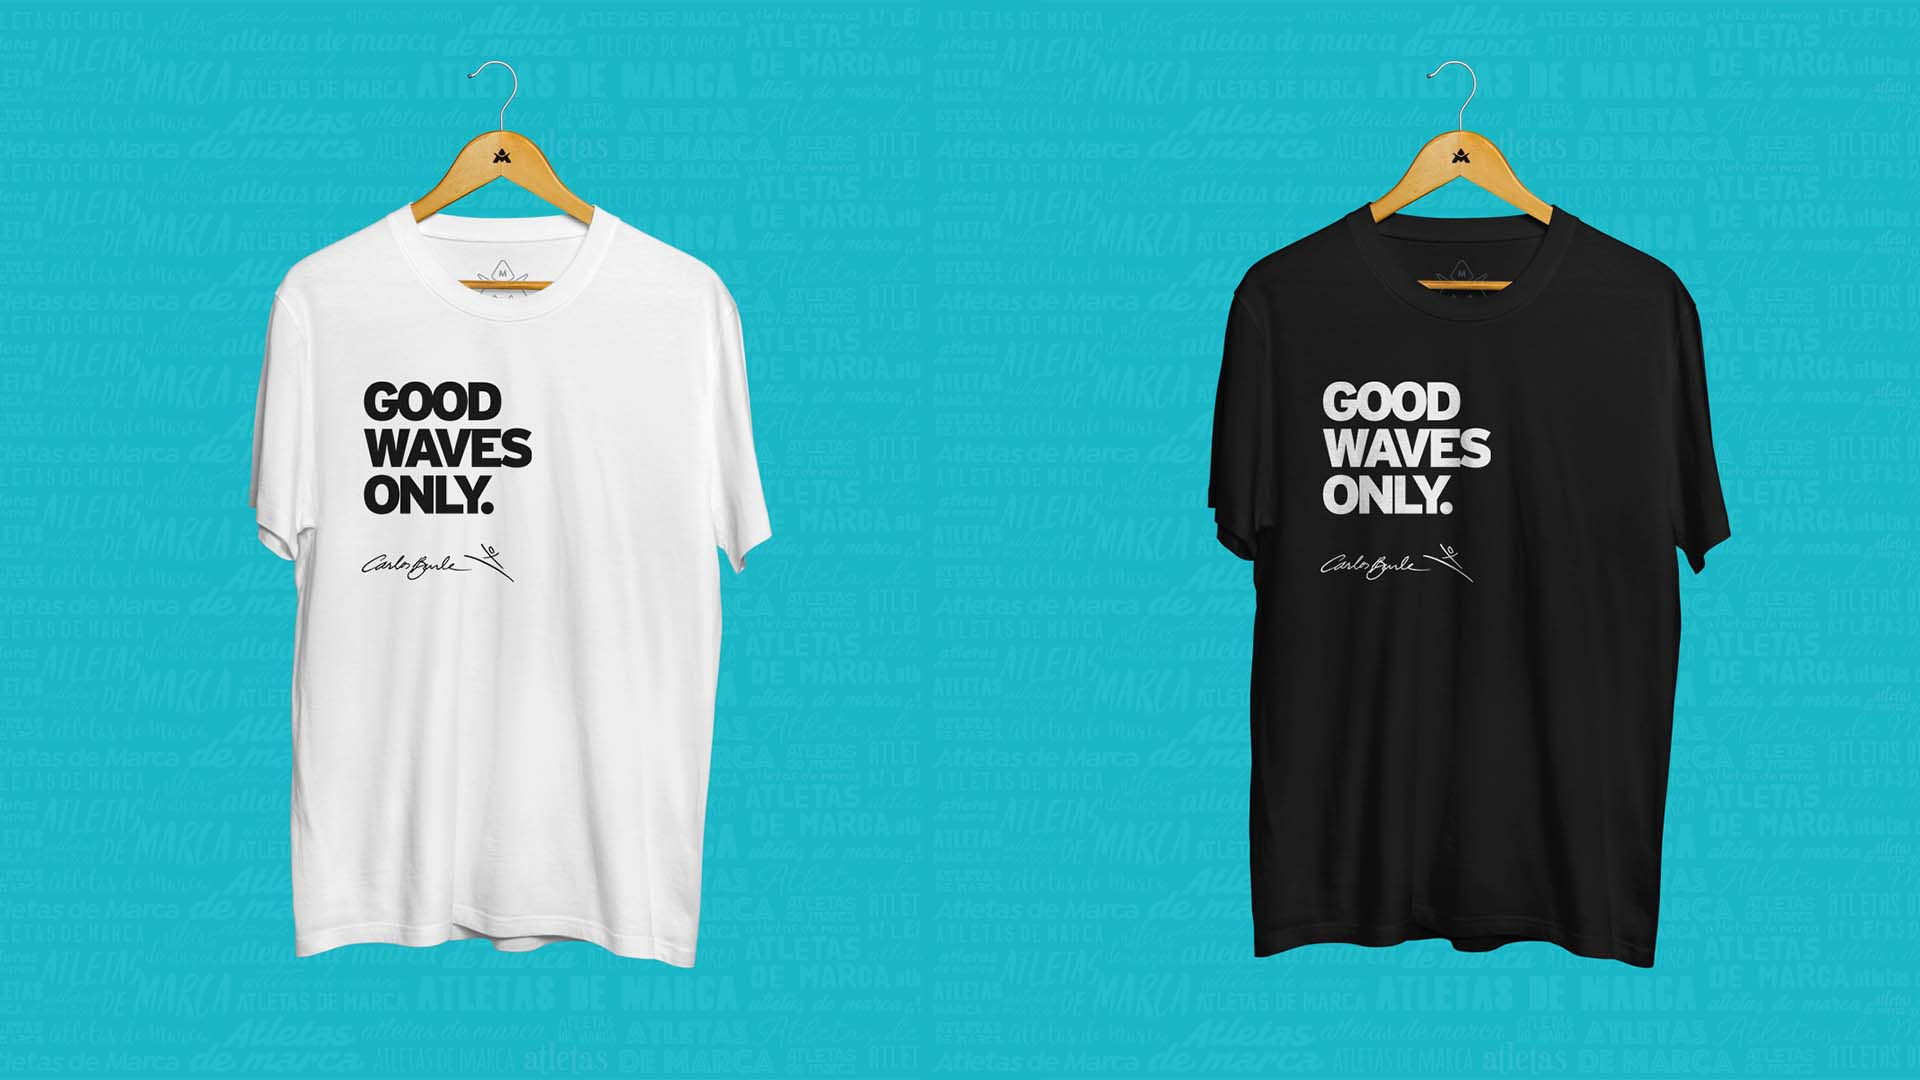 camiseta carlos burle good waves only